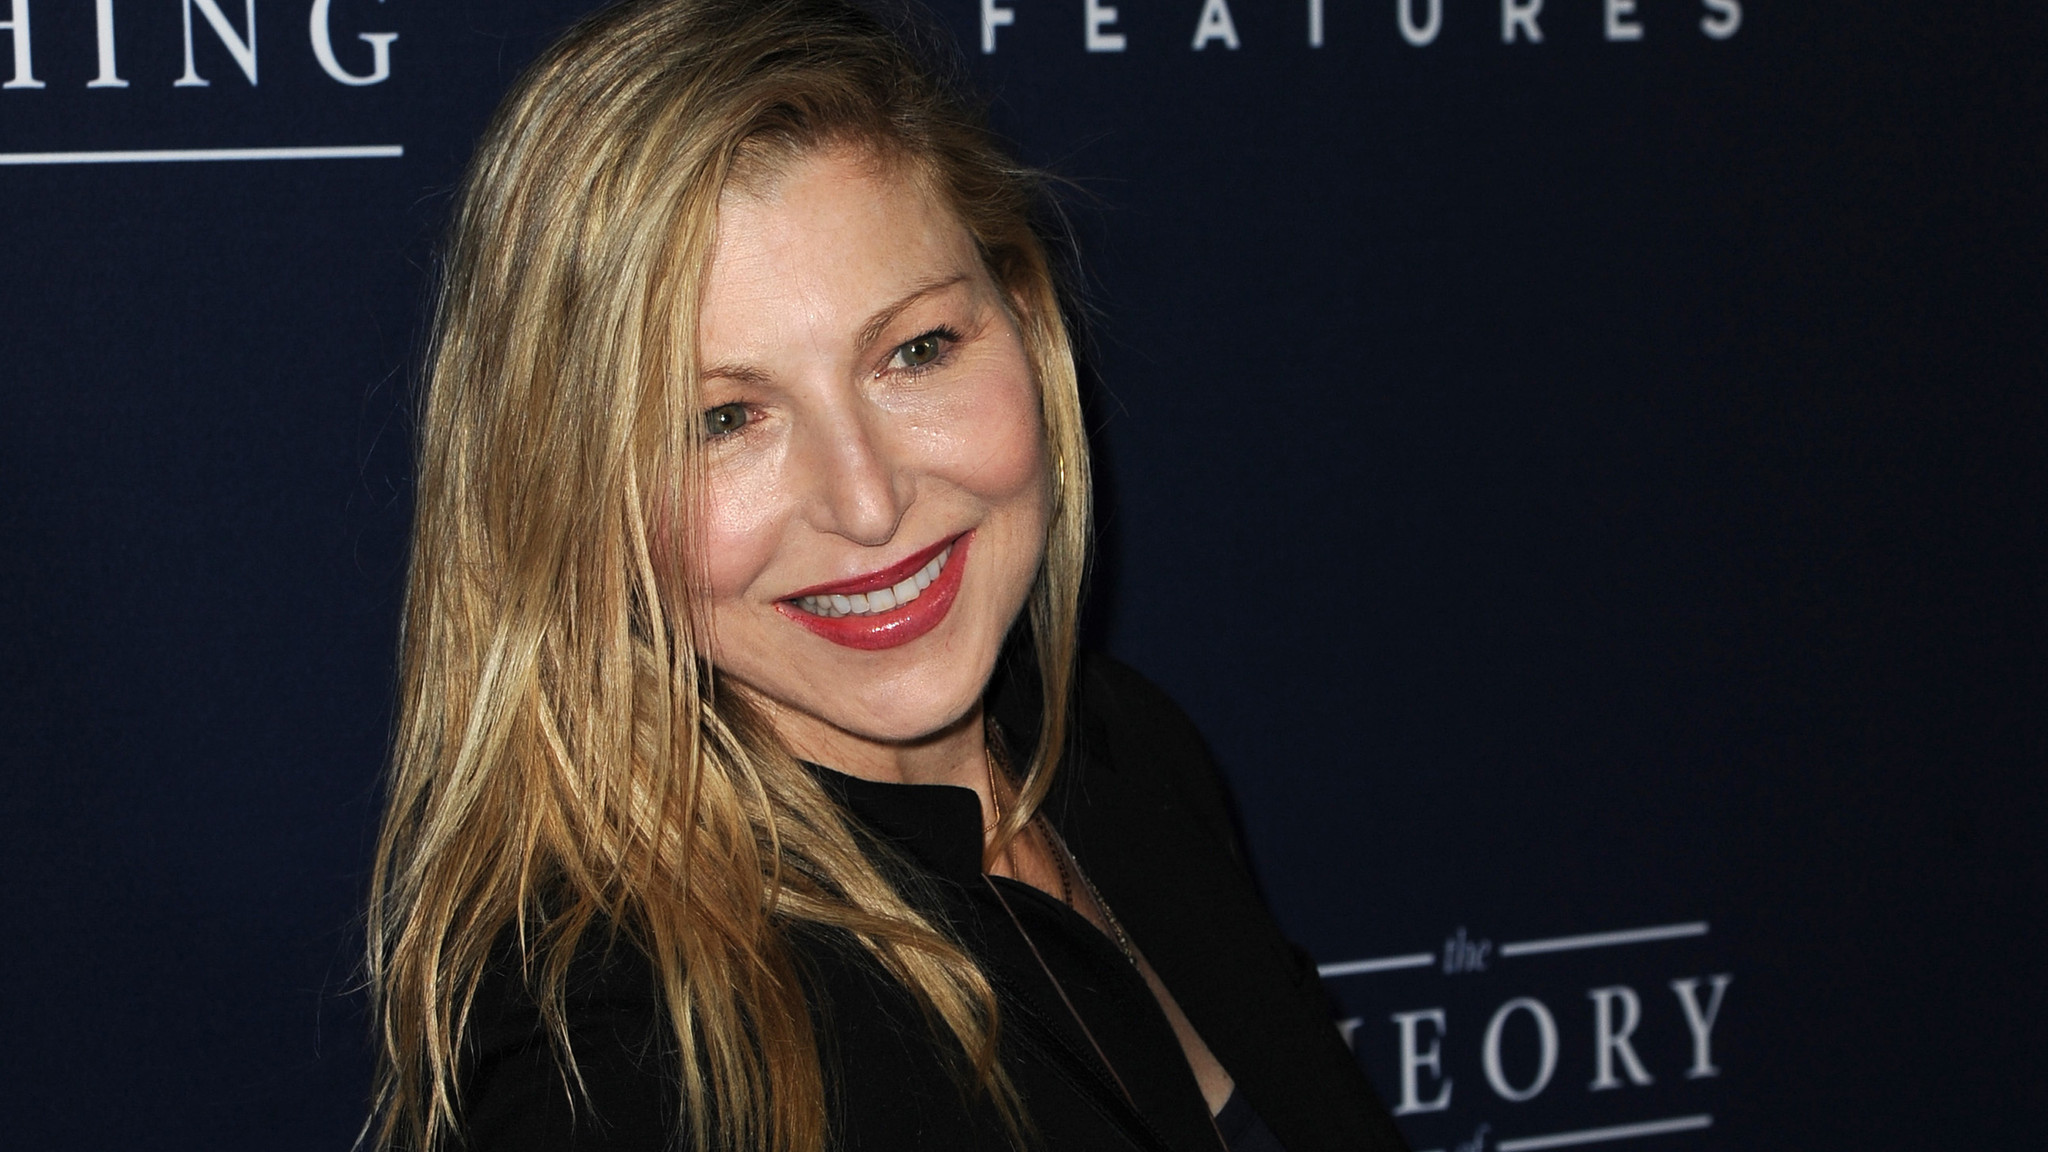 """o neals singles & personals Tatum o'neal on dating women """"one of our favorite rebel actress always dated men—until she turned 50 and finally realized what she'd been missing here, she discusses her midlife sexual awakening."""